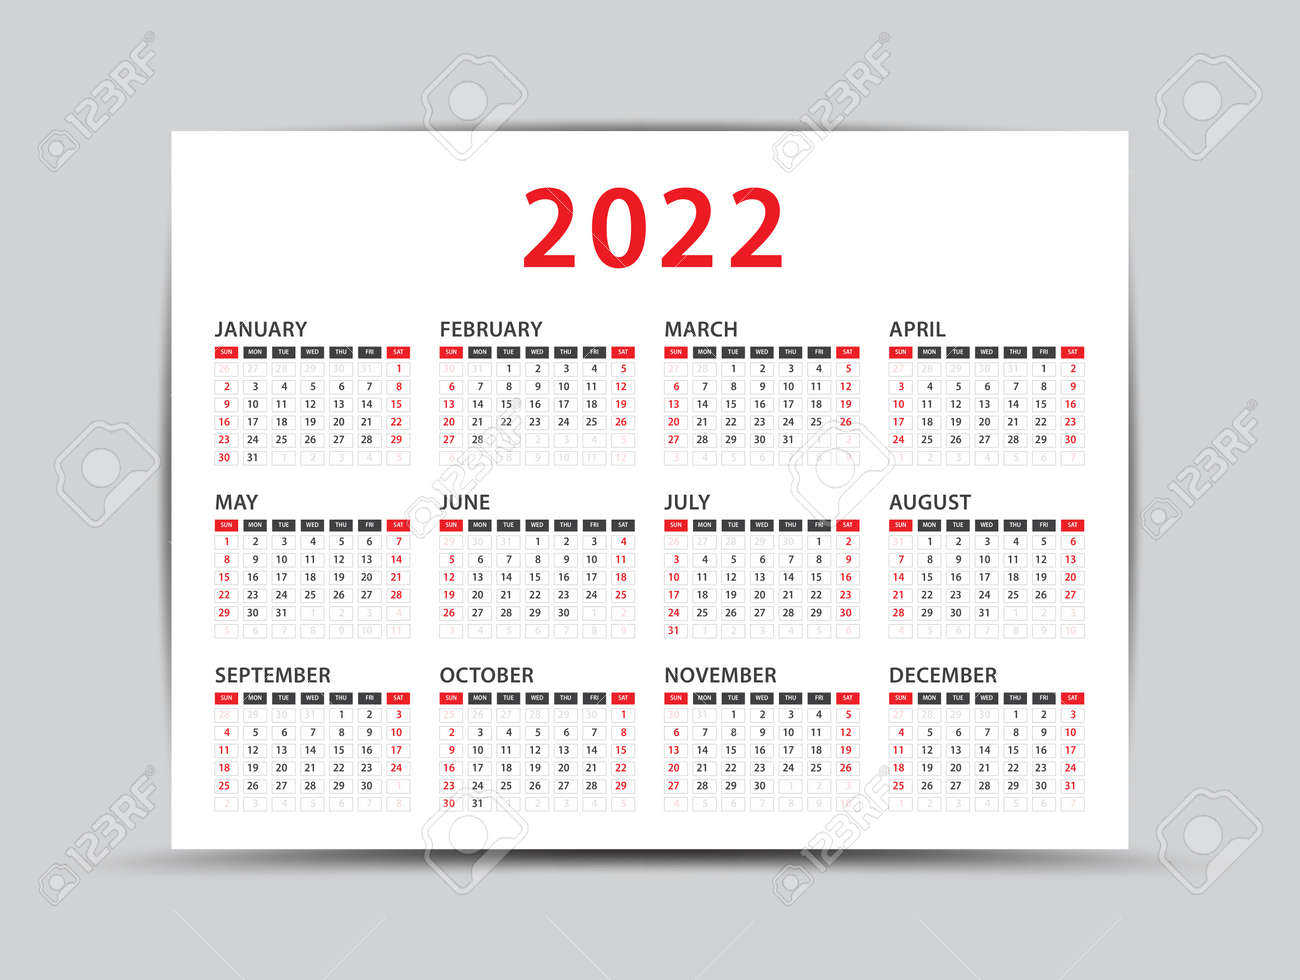 Wall Calendar 2022.2022 Yearly Calendar 12 Months Yearly Calendar Set In 2022 Royalty Free Cliparts Vectors And Stock Illustration Image 160899415